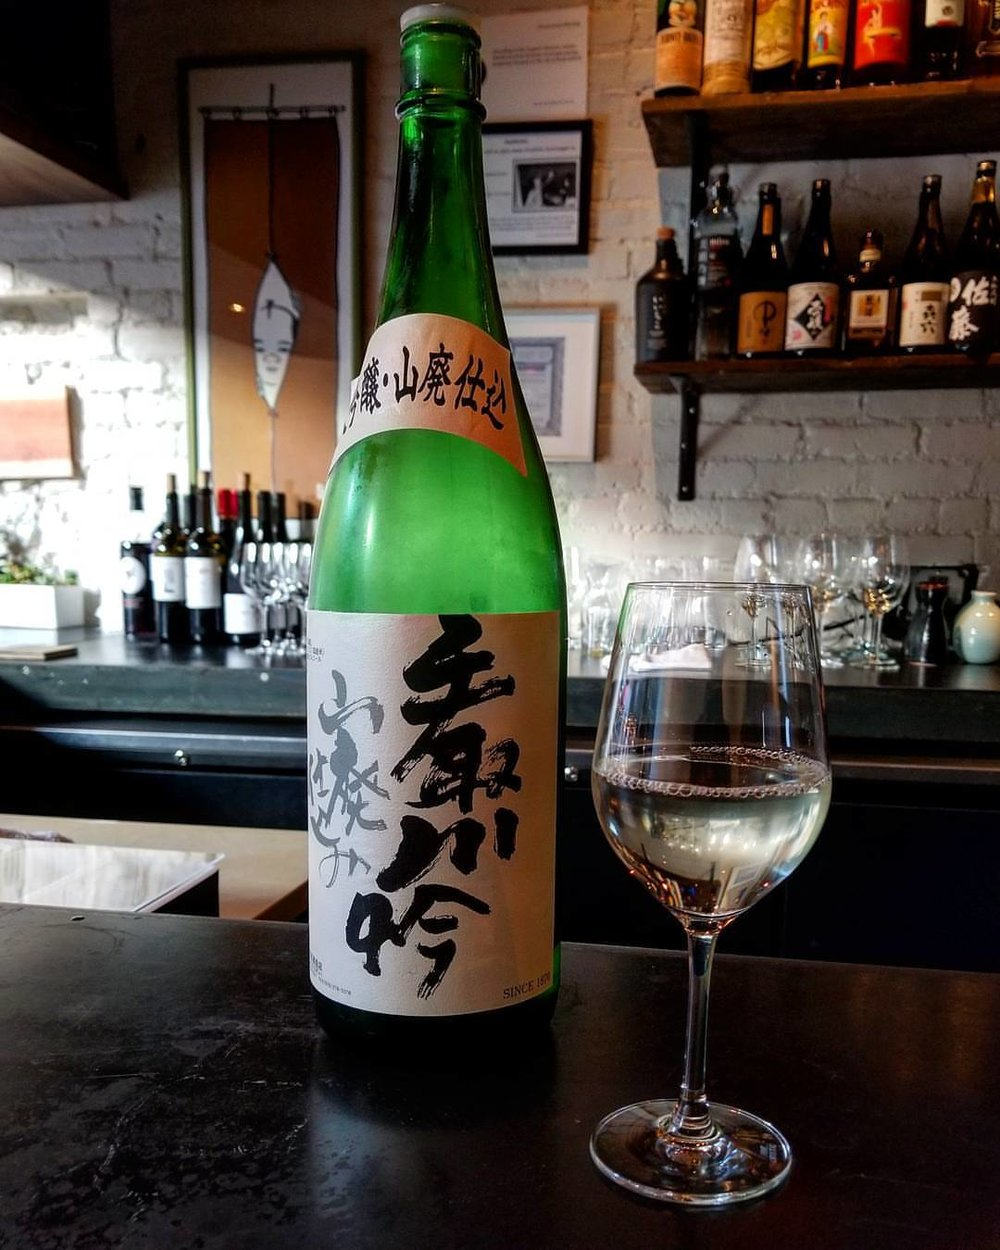 Another great night at Oka, outstanding izakaya-inspired cuisine. I started off the night with an old friend, Tedorigawa Yamahai Daiginjo (thanks @jamiefgraves ) (at OKA)